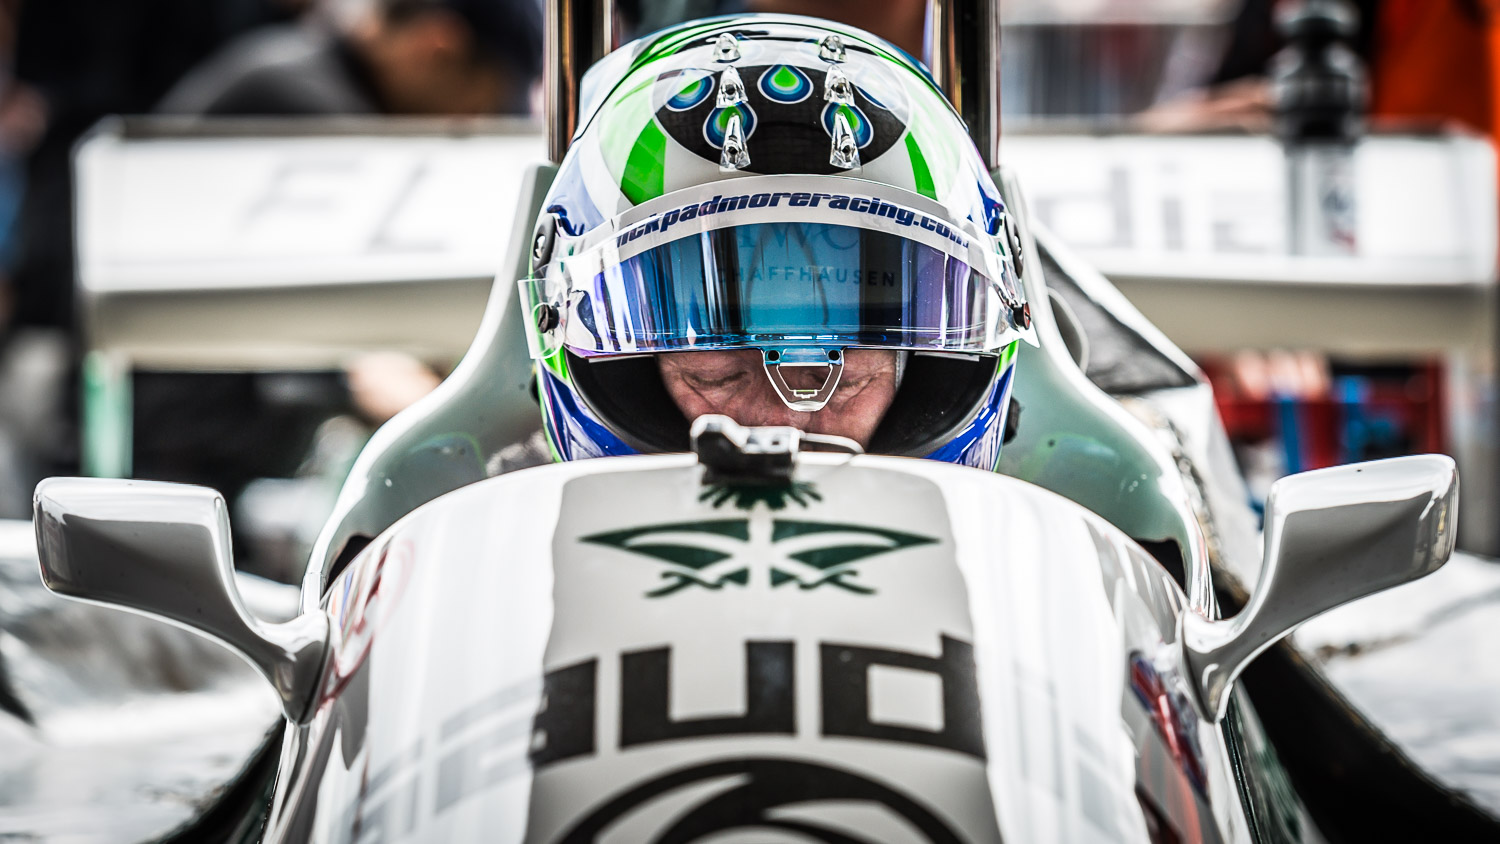 racing driver closed eyes motorsport photography